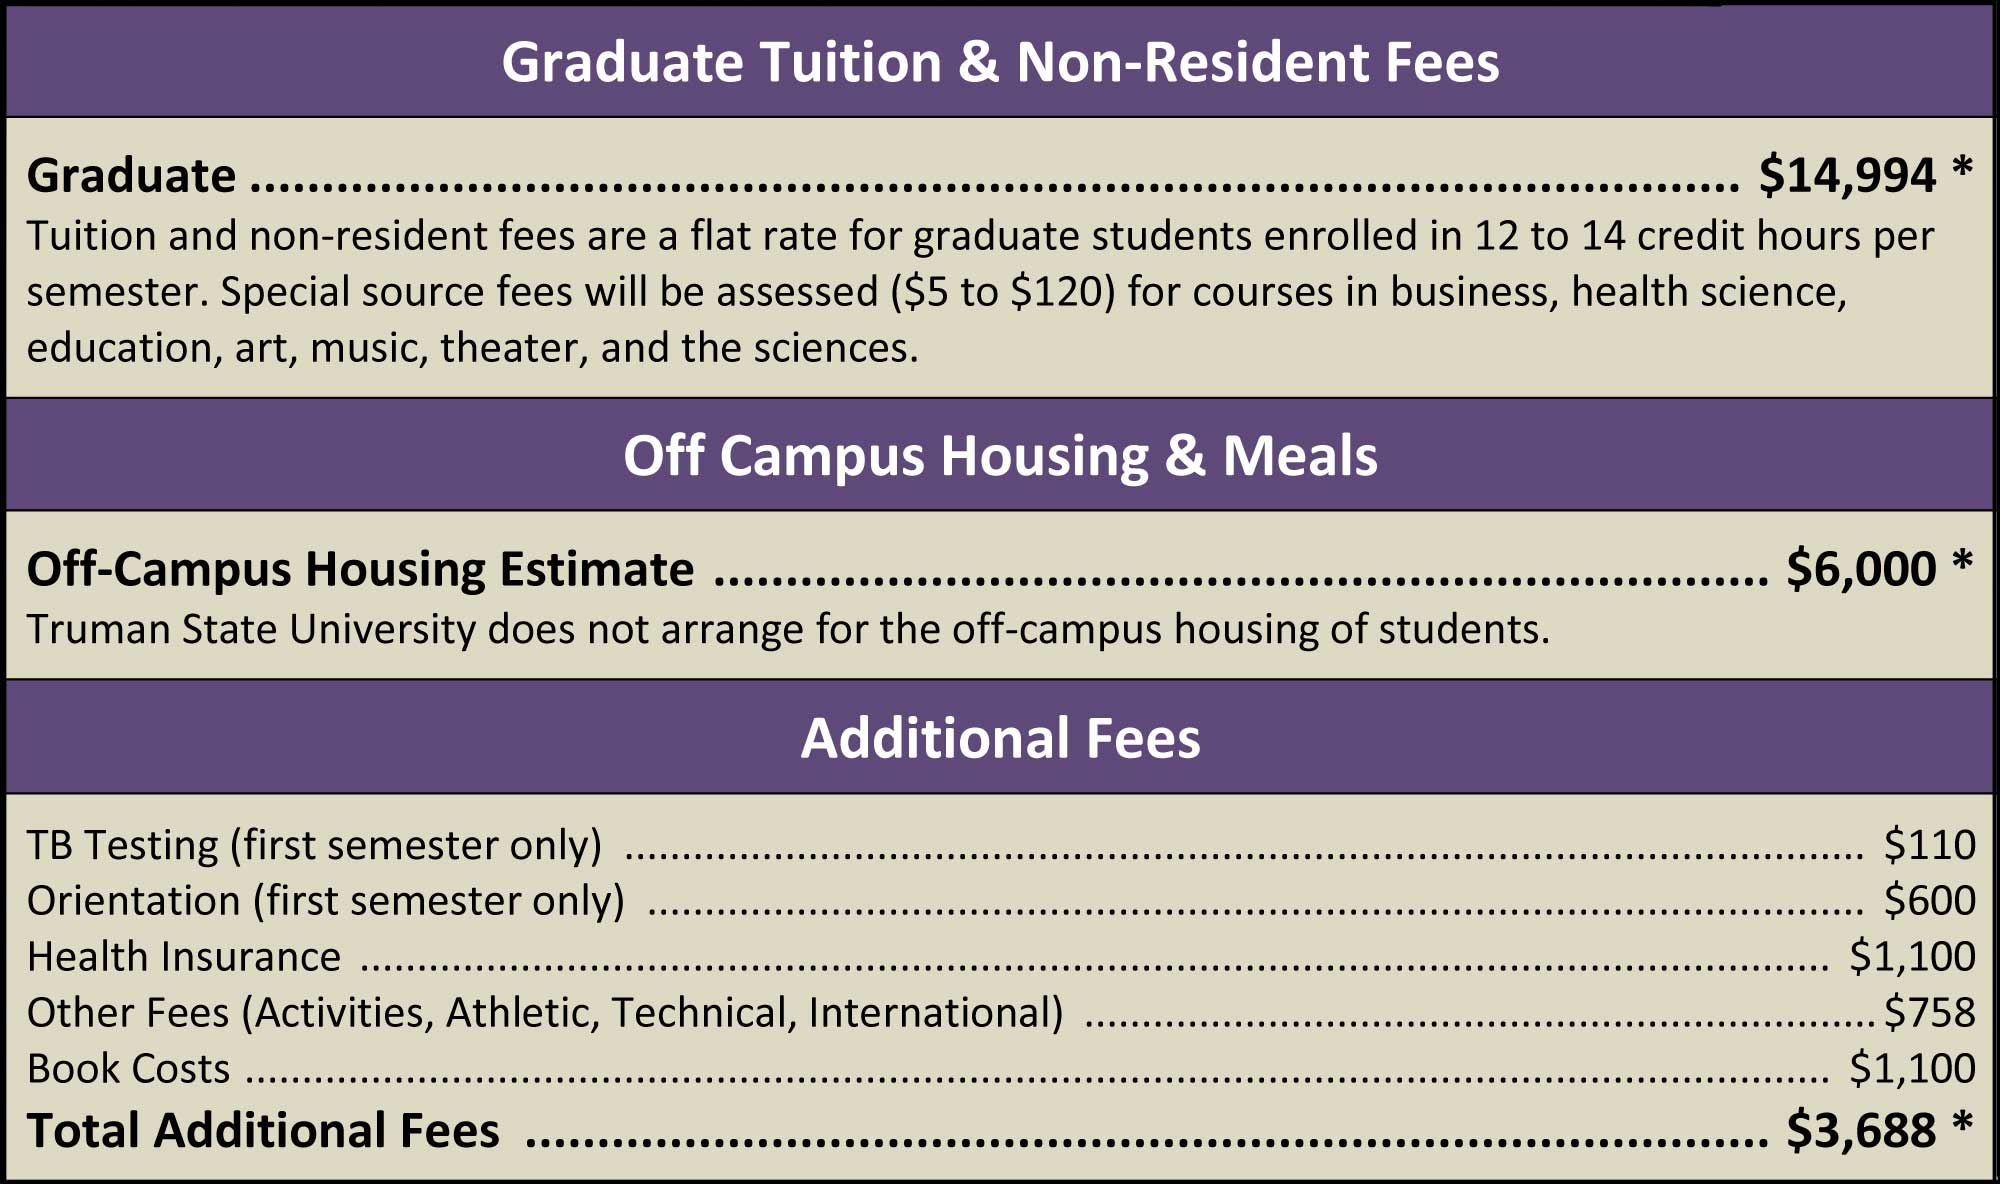 International Students: Graduate Tuition & Non-Resident Fees 2015-2016